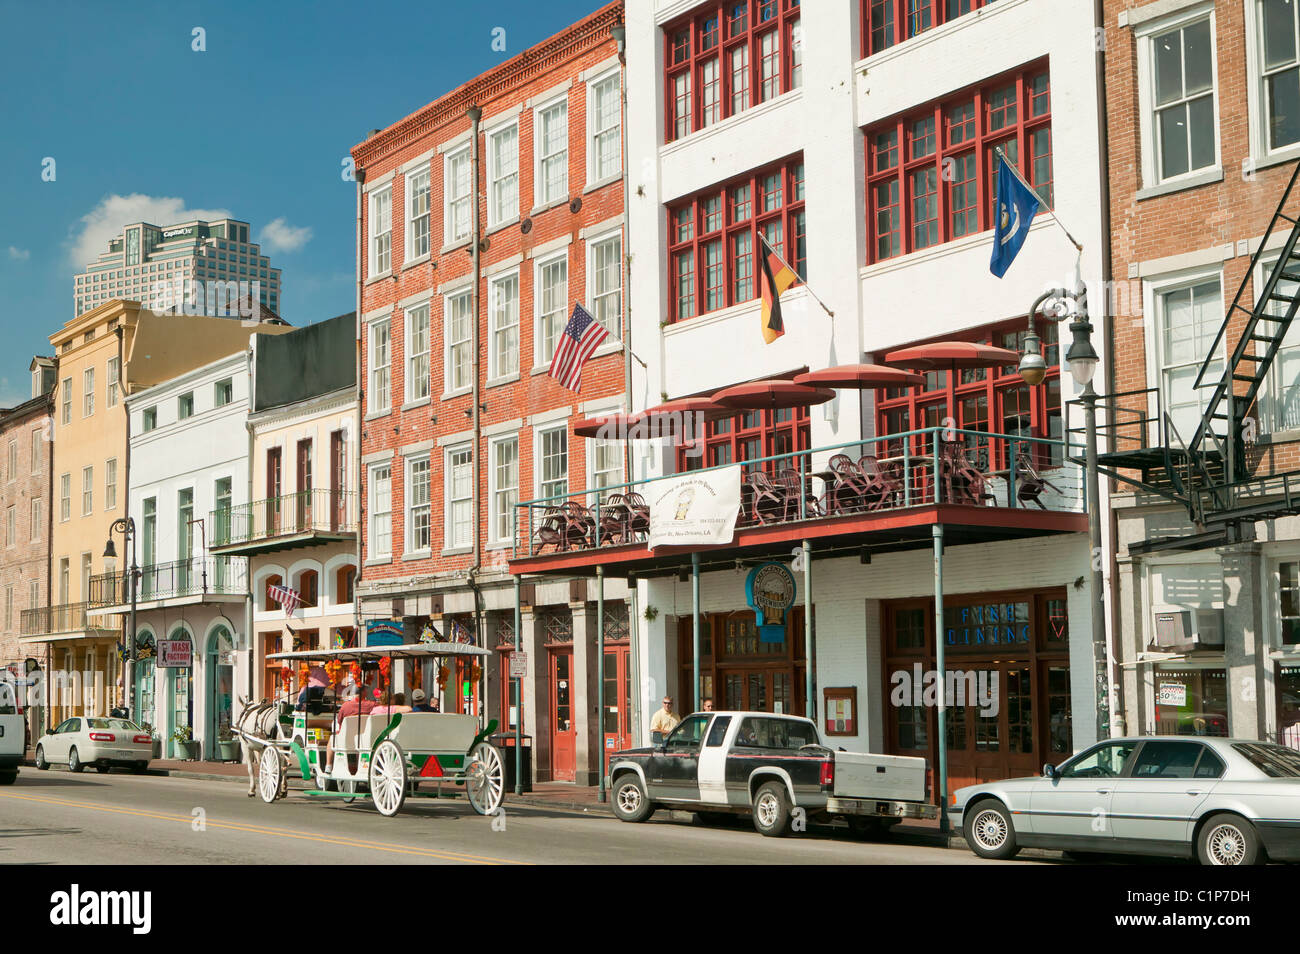 Carriage on Decatur street New Orleans - Stock Image